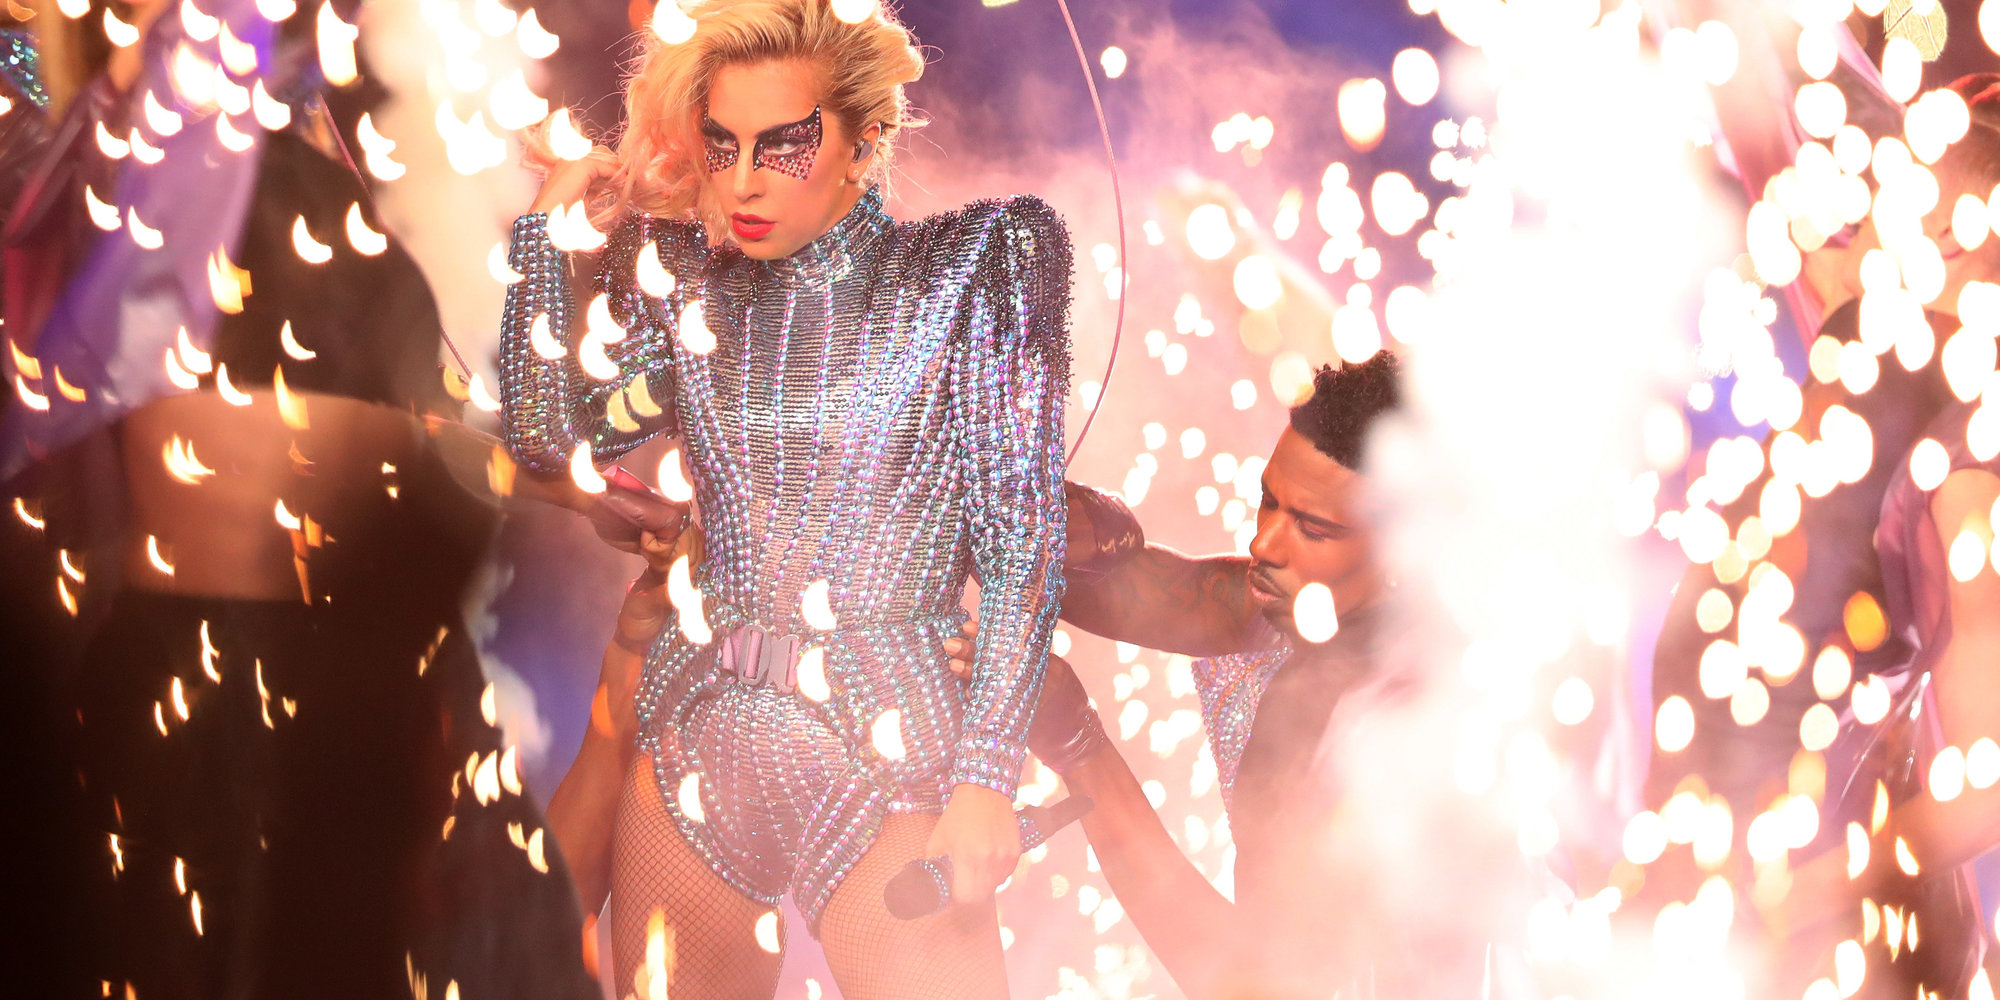 HOUSTON, TX - FEBRUARY 05:  Lady Gaga performs during the Pepsi Zero Sugar Super Bowl 51 Halftime Show at NRG Stadium on February 5, 2017 in Houston, Texas.  (Photo by Tom Pennington/Getty Images) luxury furniture Get to Know Luxxu's Newest Luxury Furniture Designs lady gaga superbowl 2017 luxury furniture Get to Know Luxxu's Newest Luxury Furniture Designs lady gaga superbowl 2017